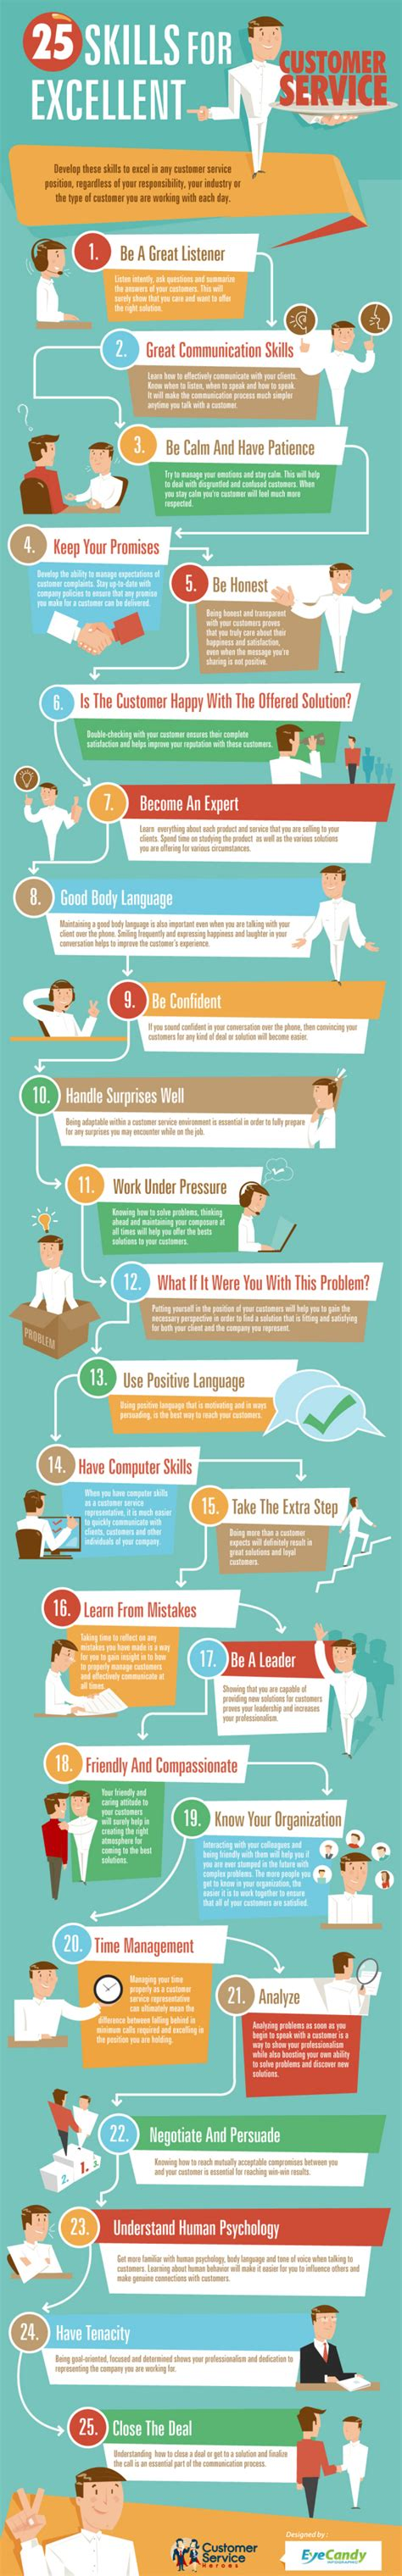 25 skills for excellent customer service infographic all knowledge contributing topics